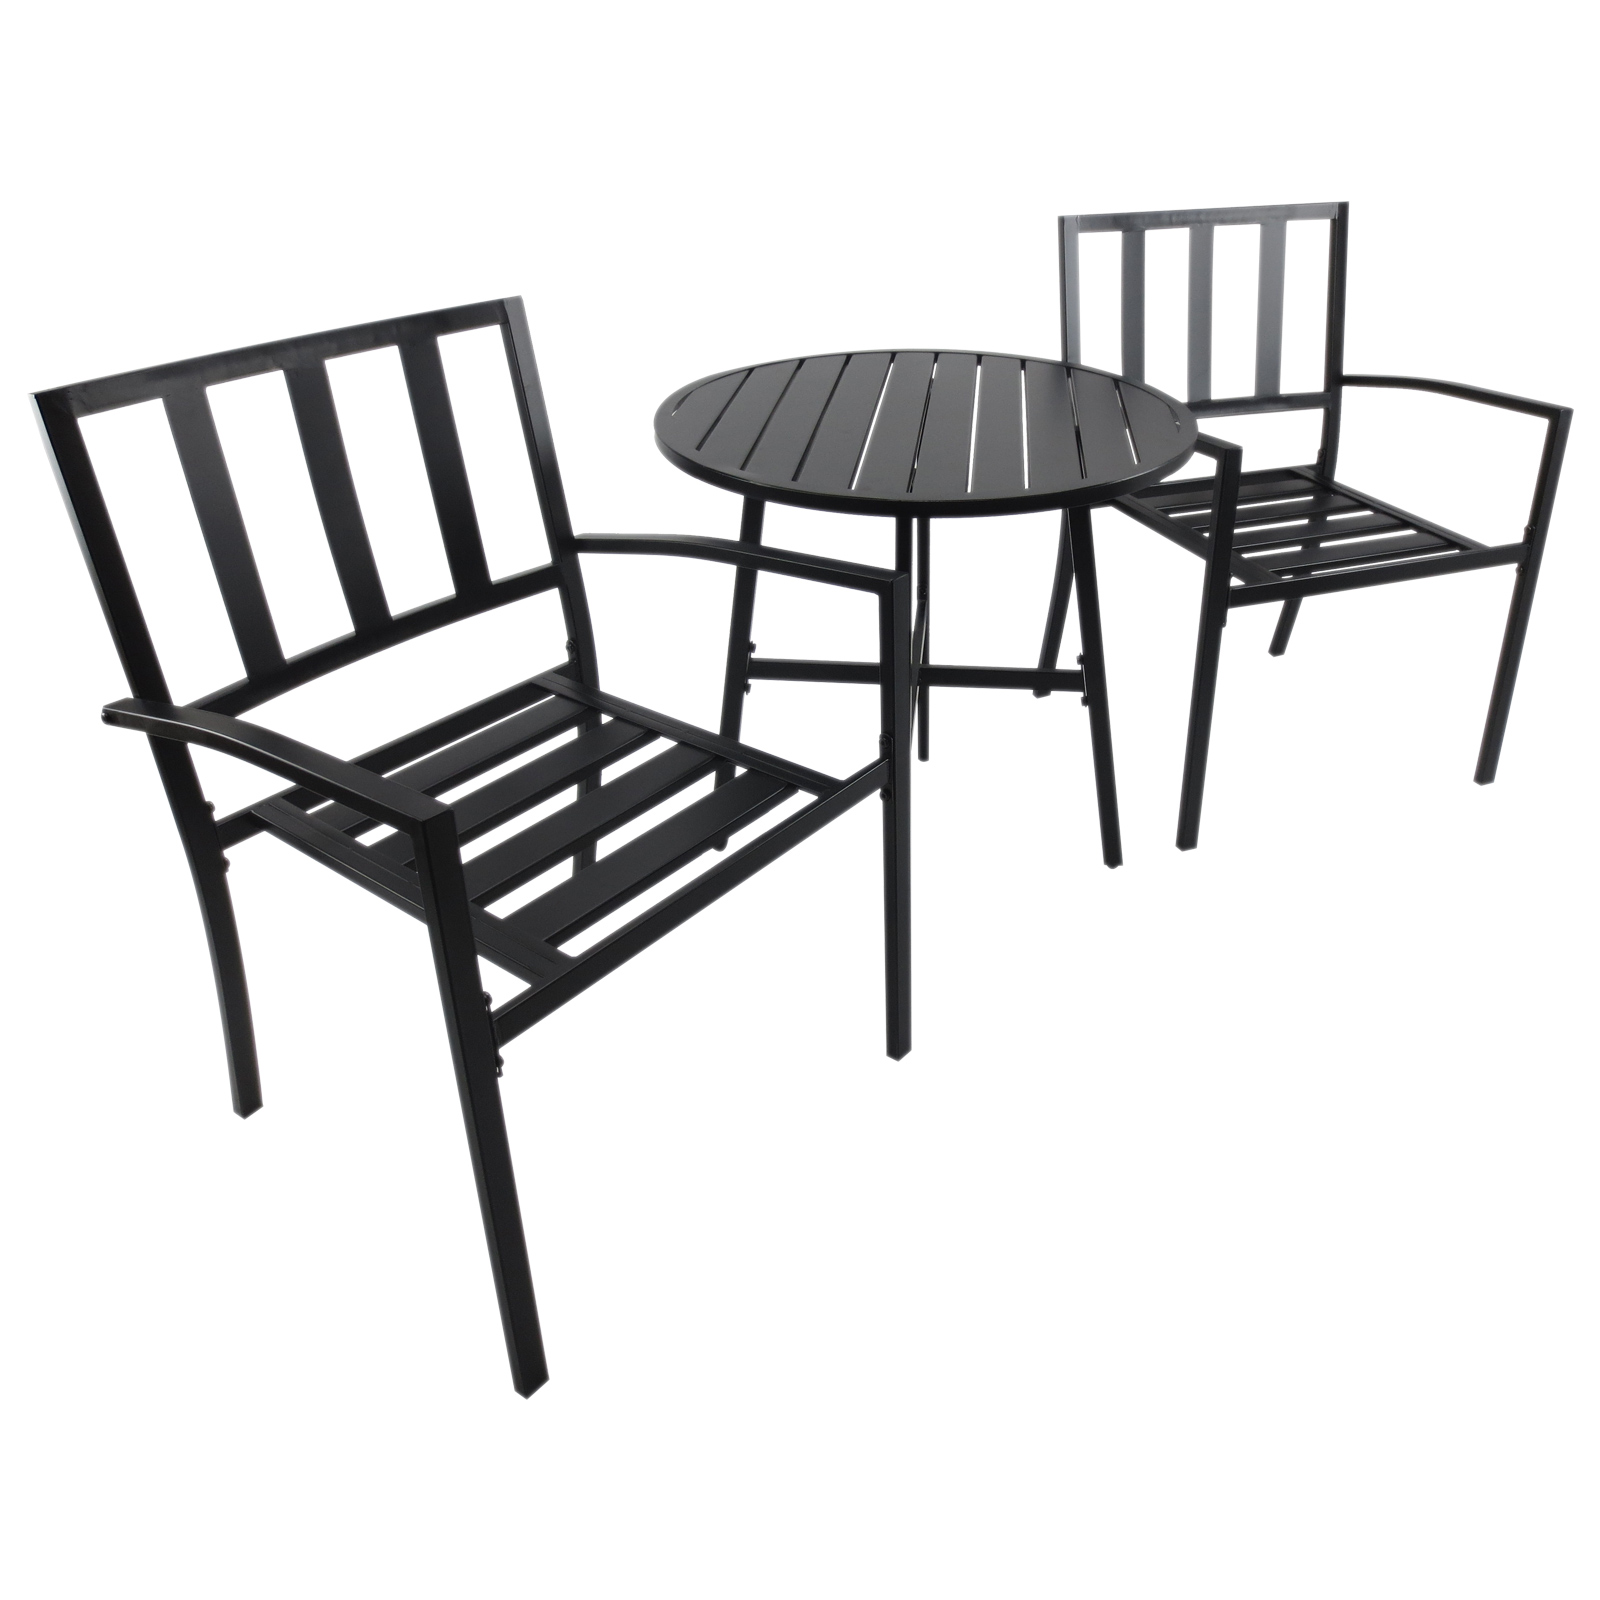 Outsunny 3pcs Bistro Set Table Chair Set Patio Outdoor Garden Furniture